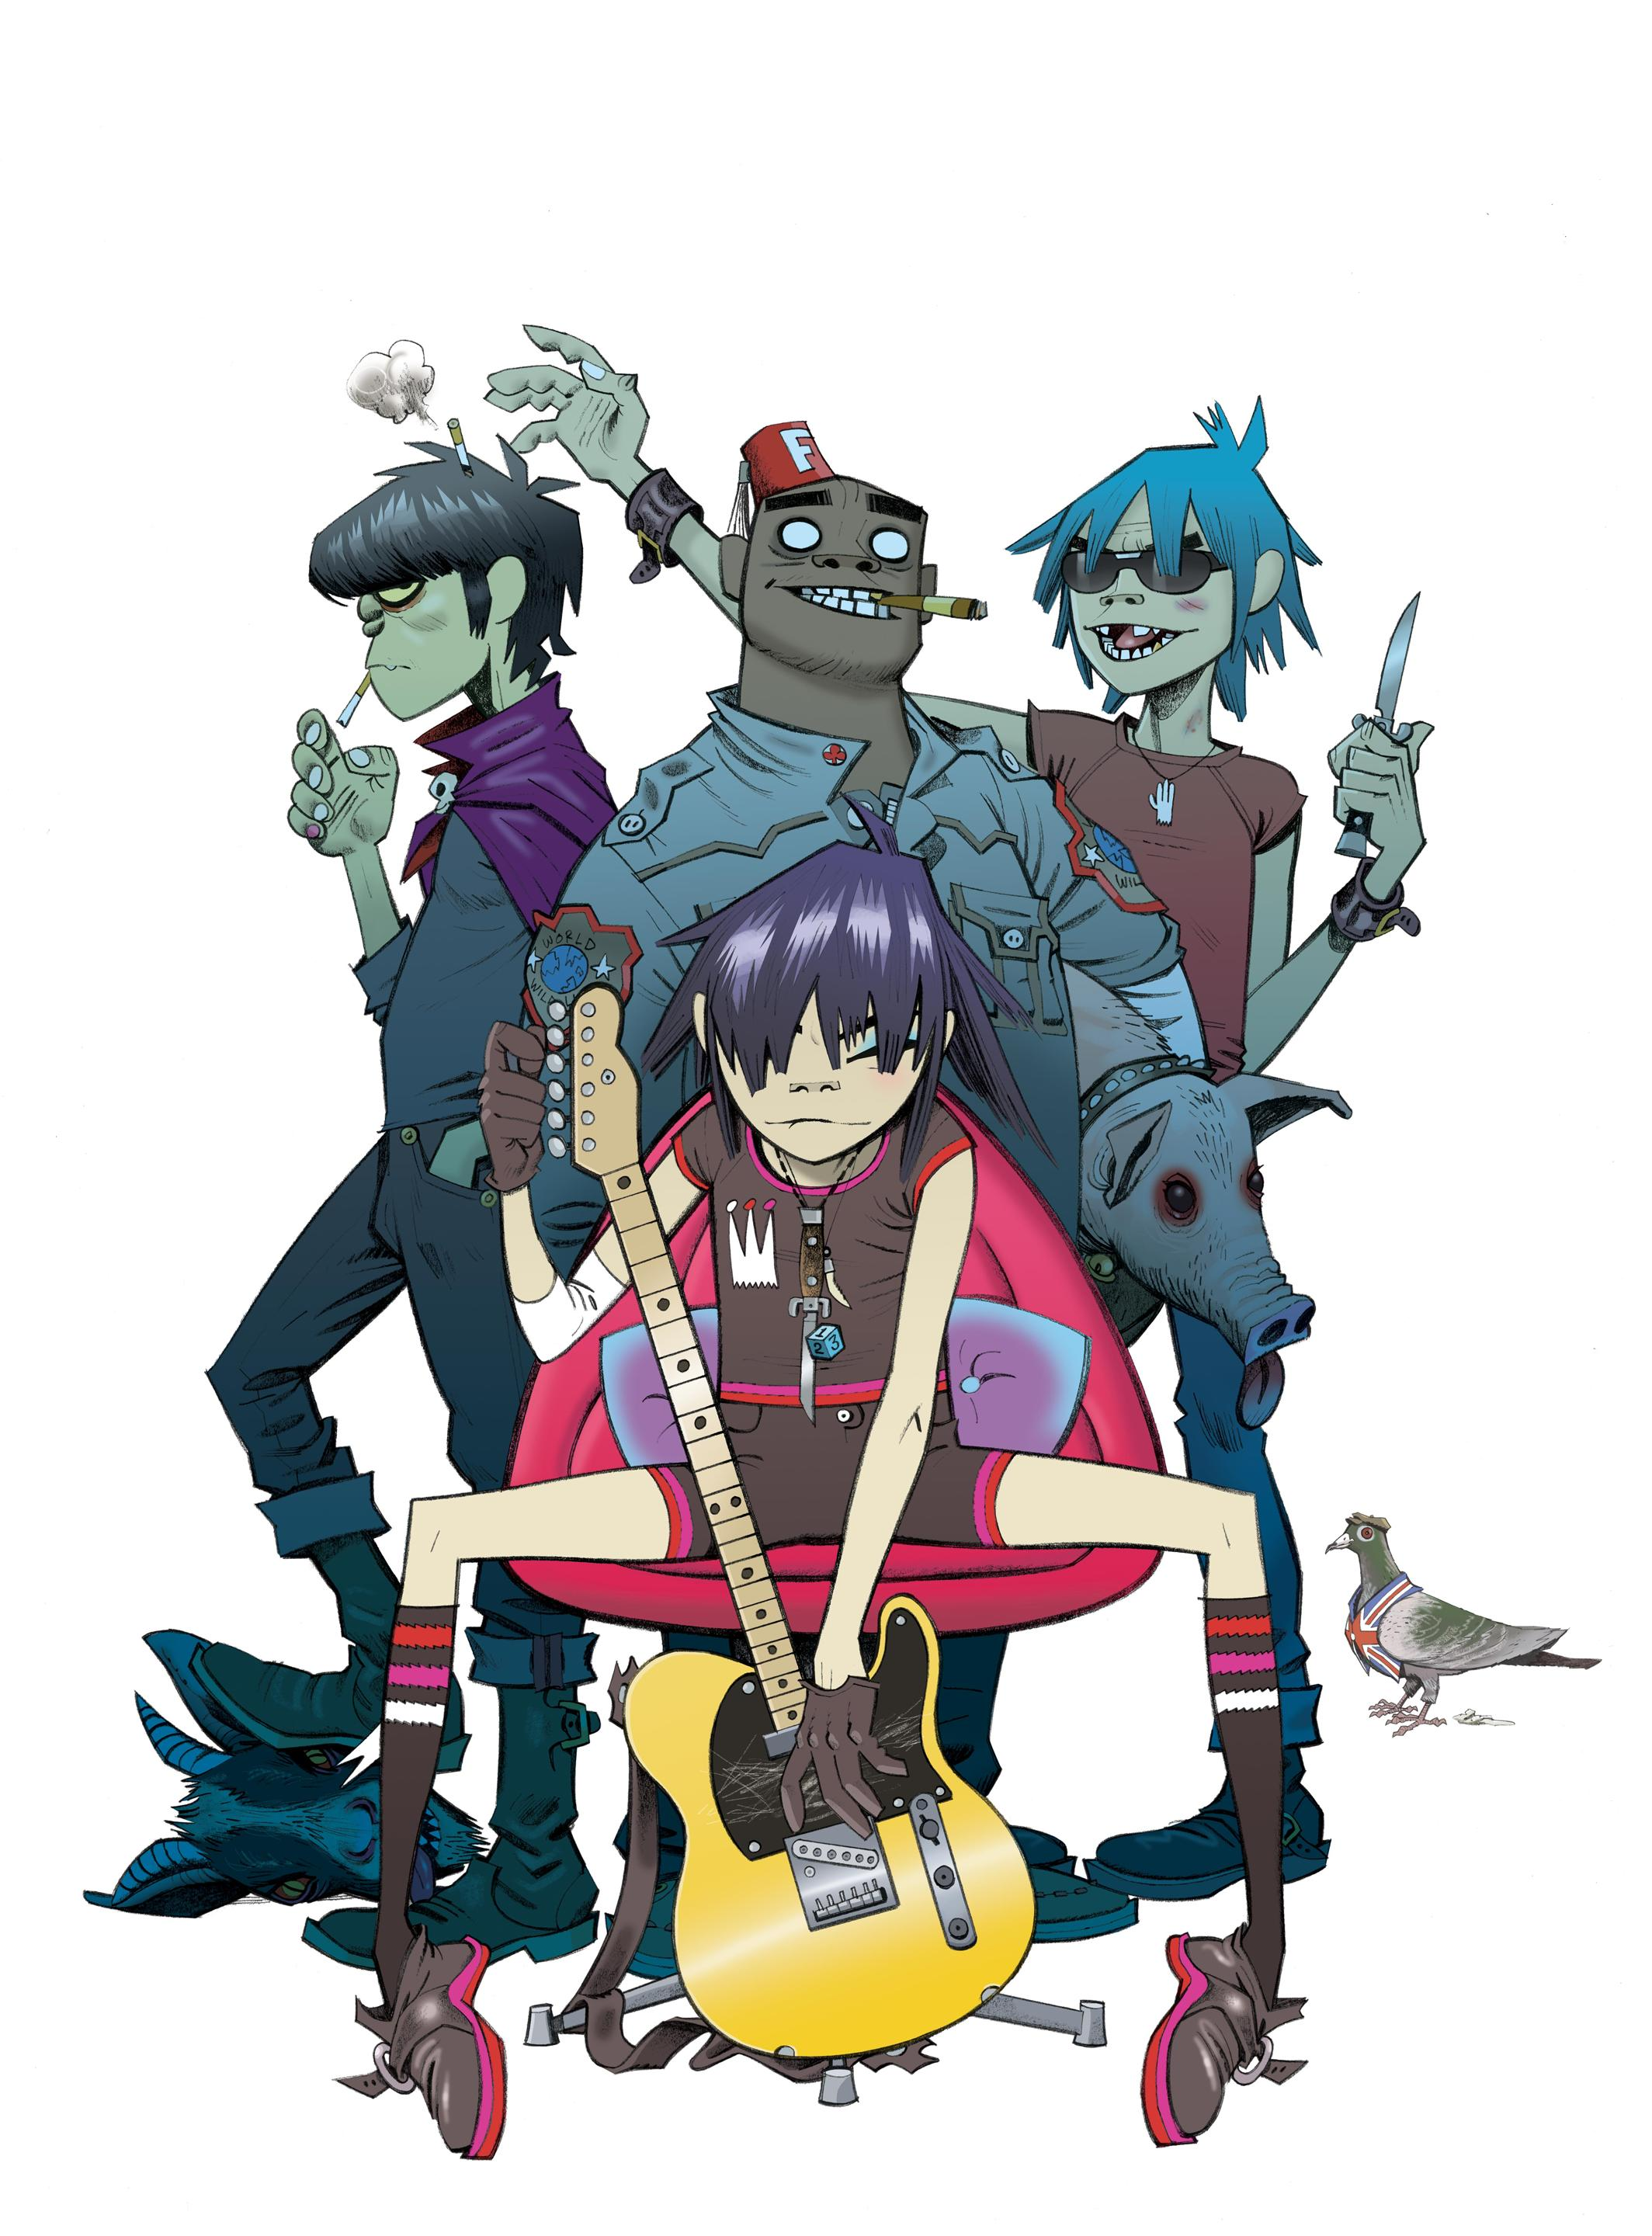 Gorillaz phase 1 celebrity take down